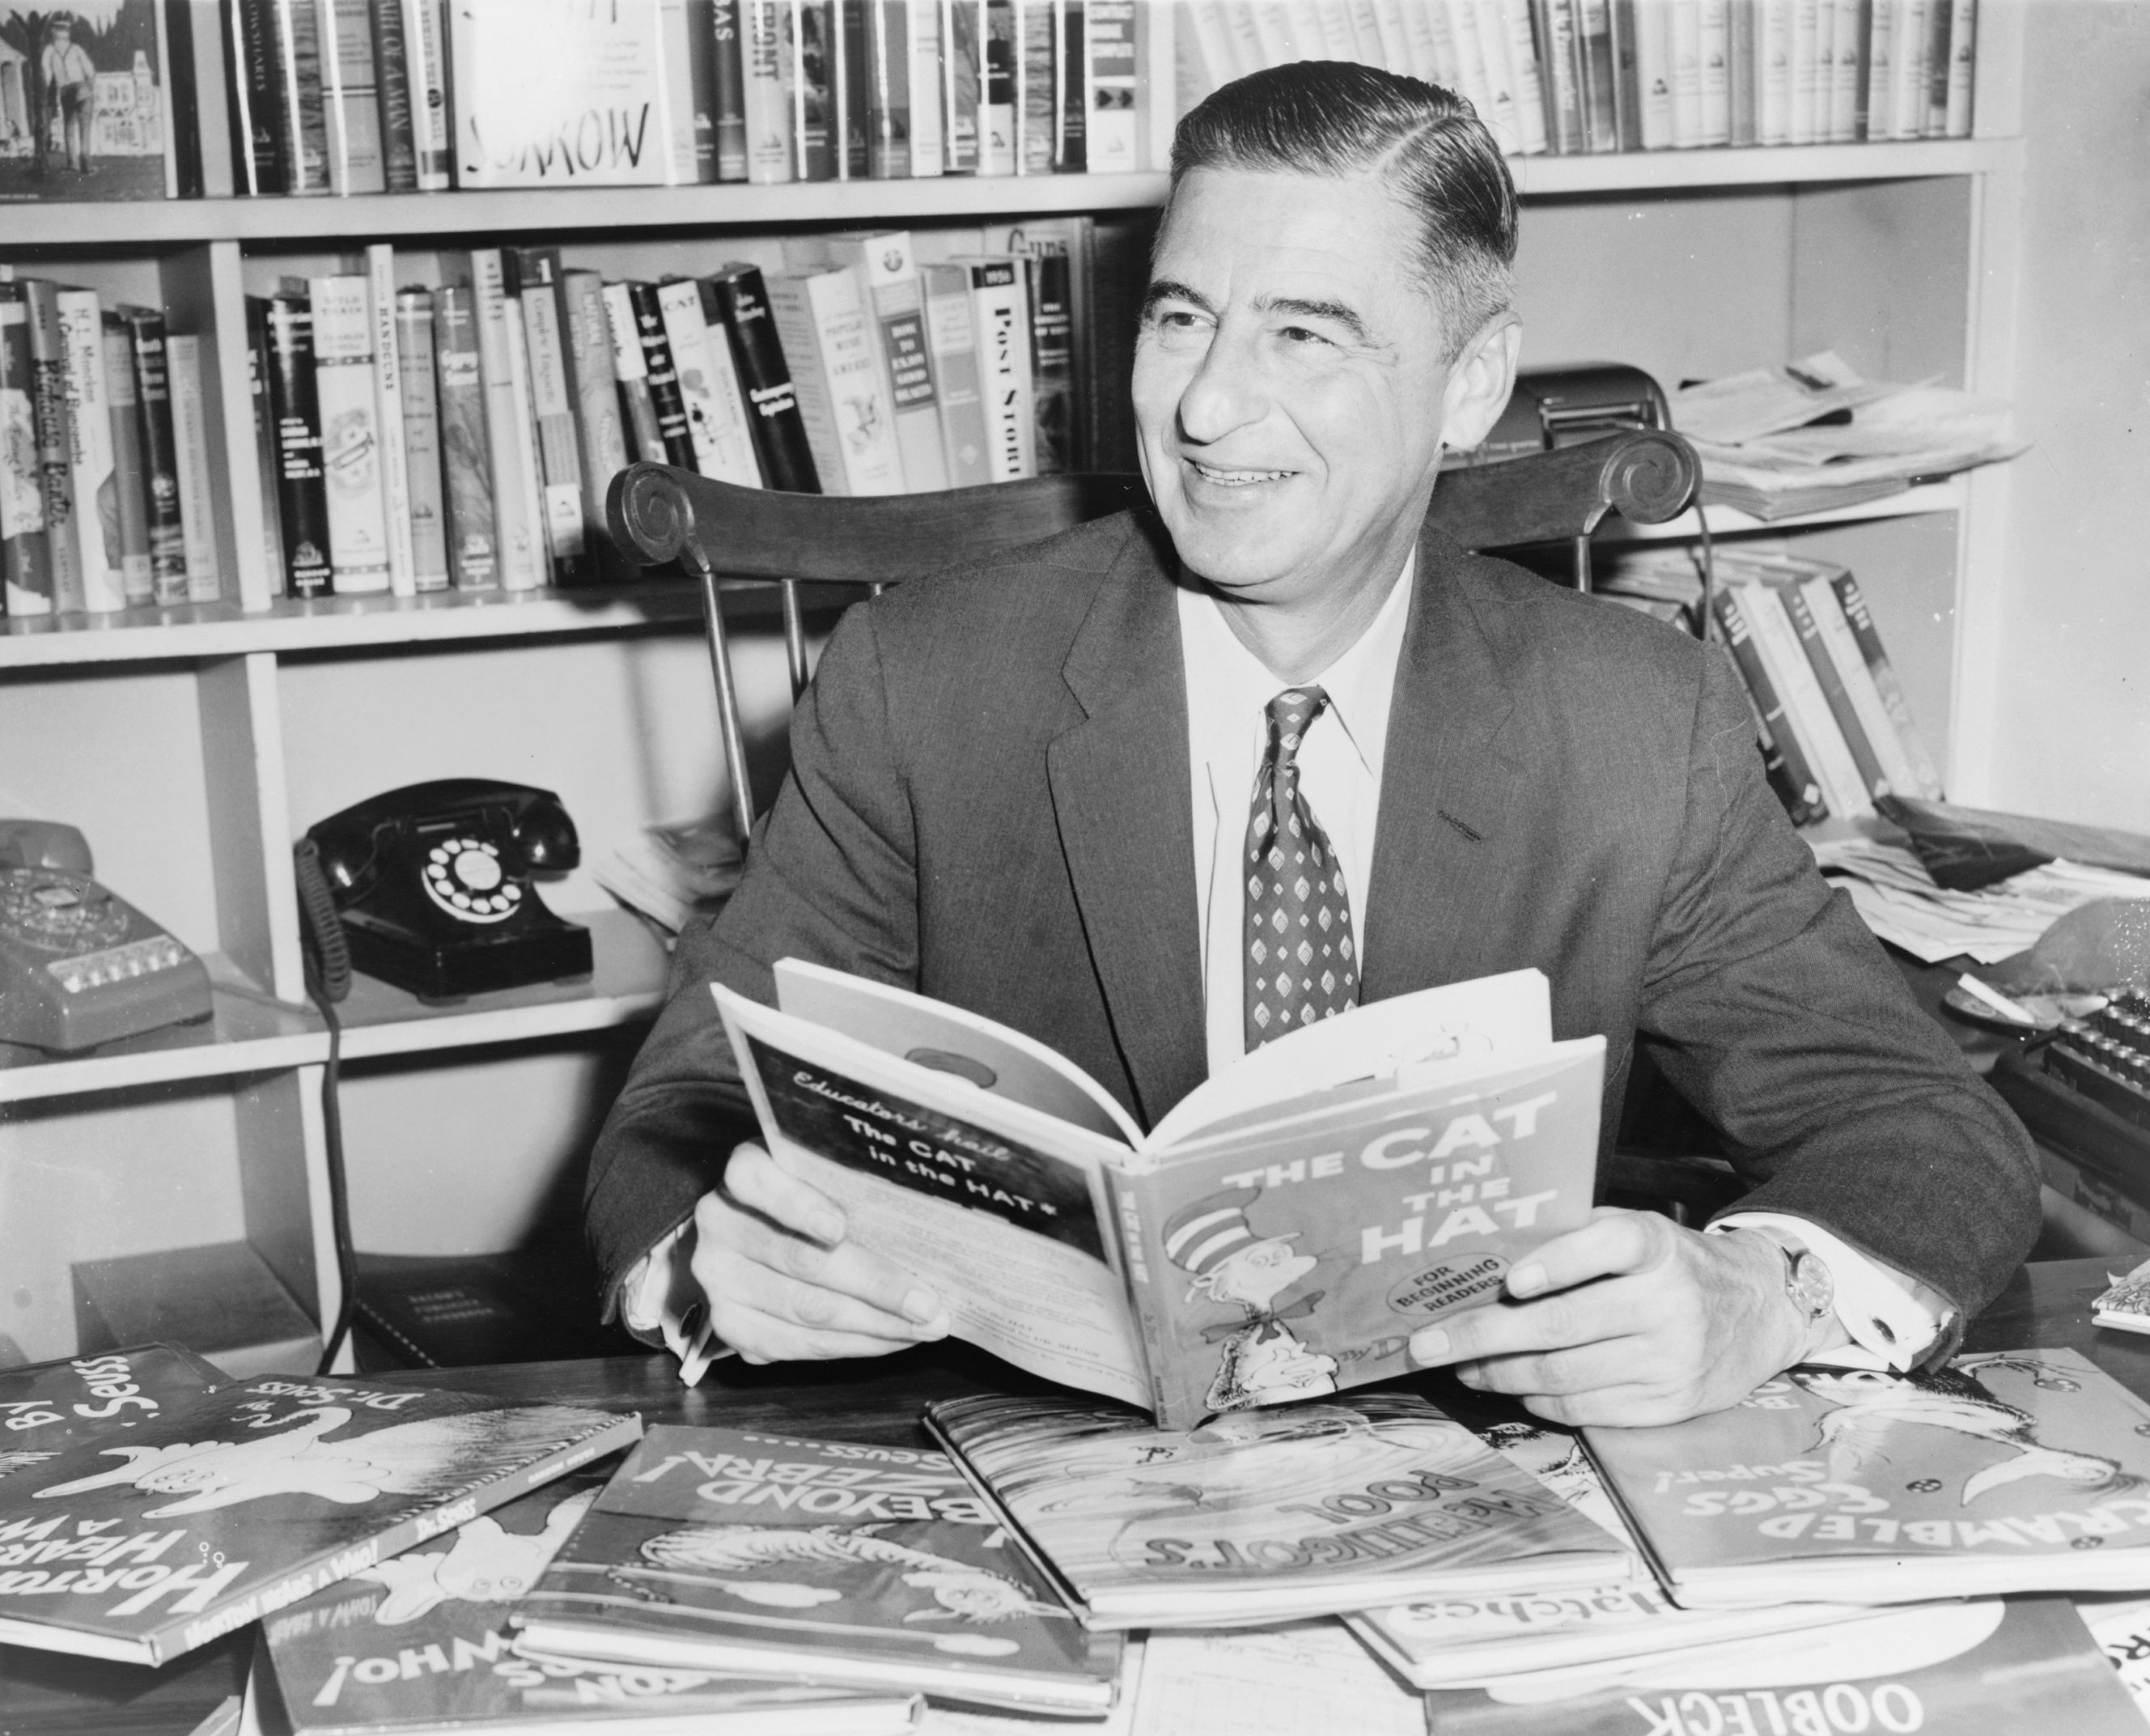 Dr. Seuss Is A Vital Ambassador For Reading And For Imagination And Whimsy